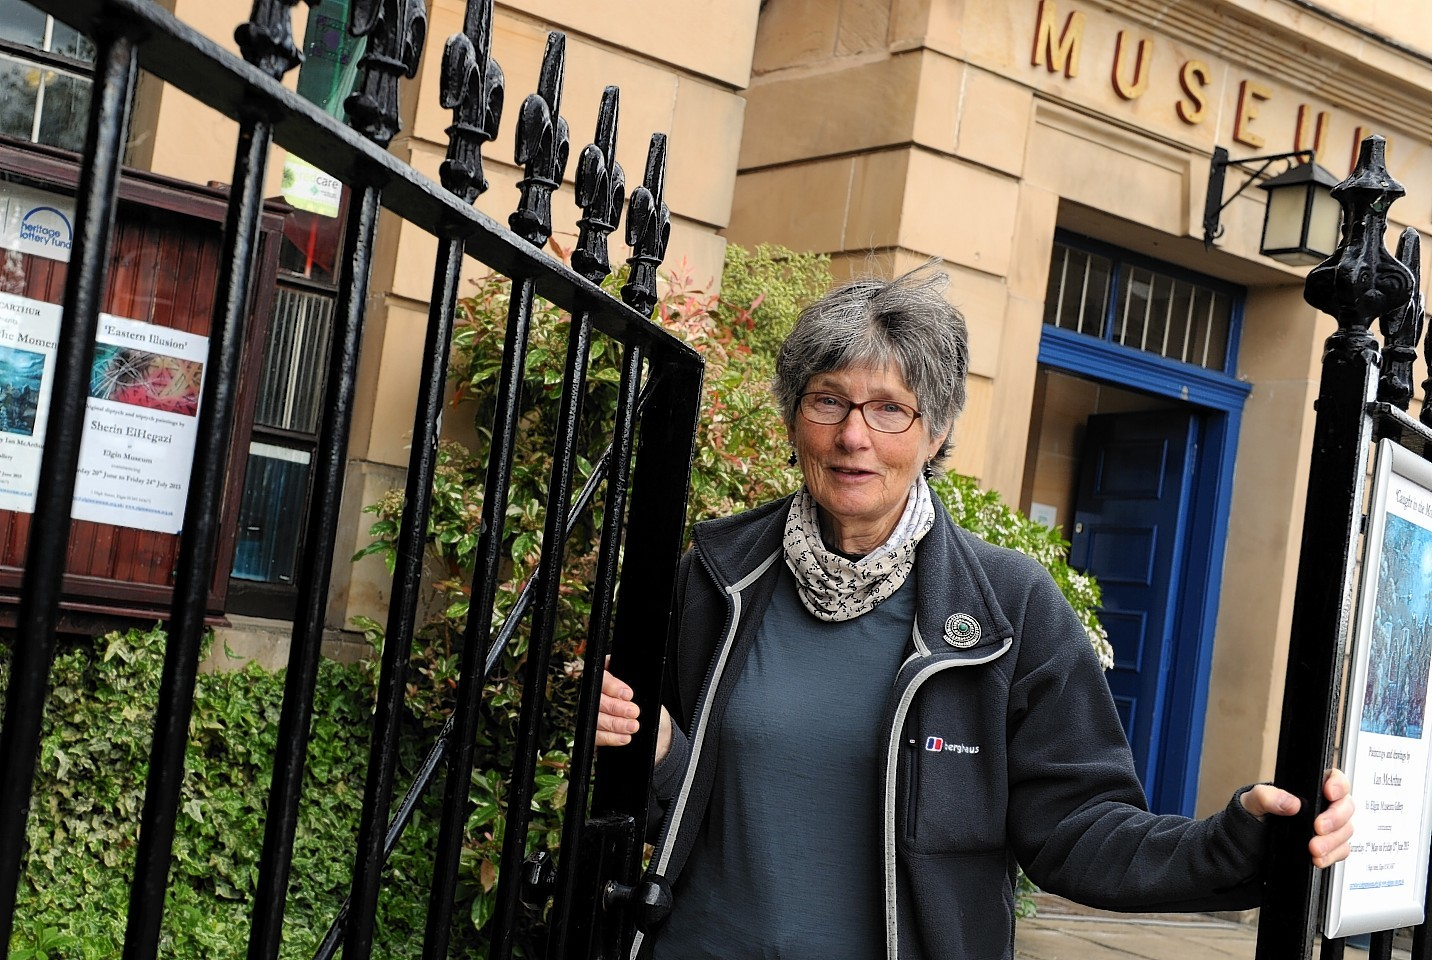 Janet Trythall, vice-president of Moray Society